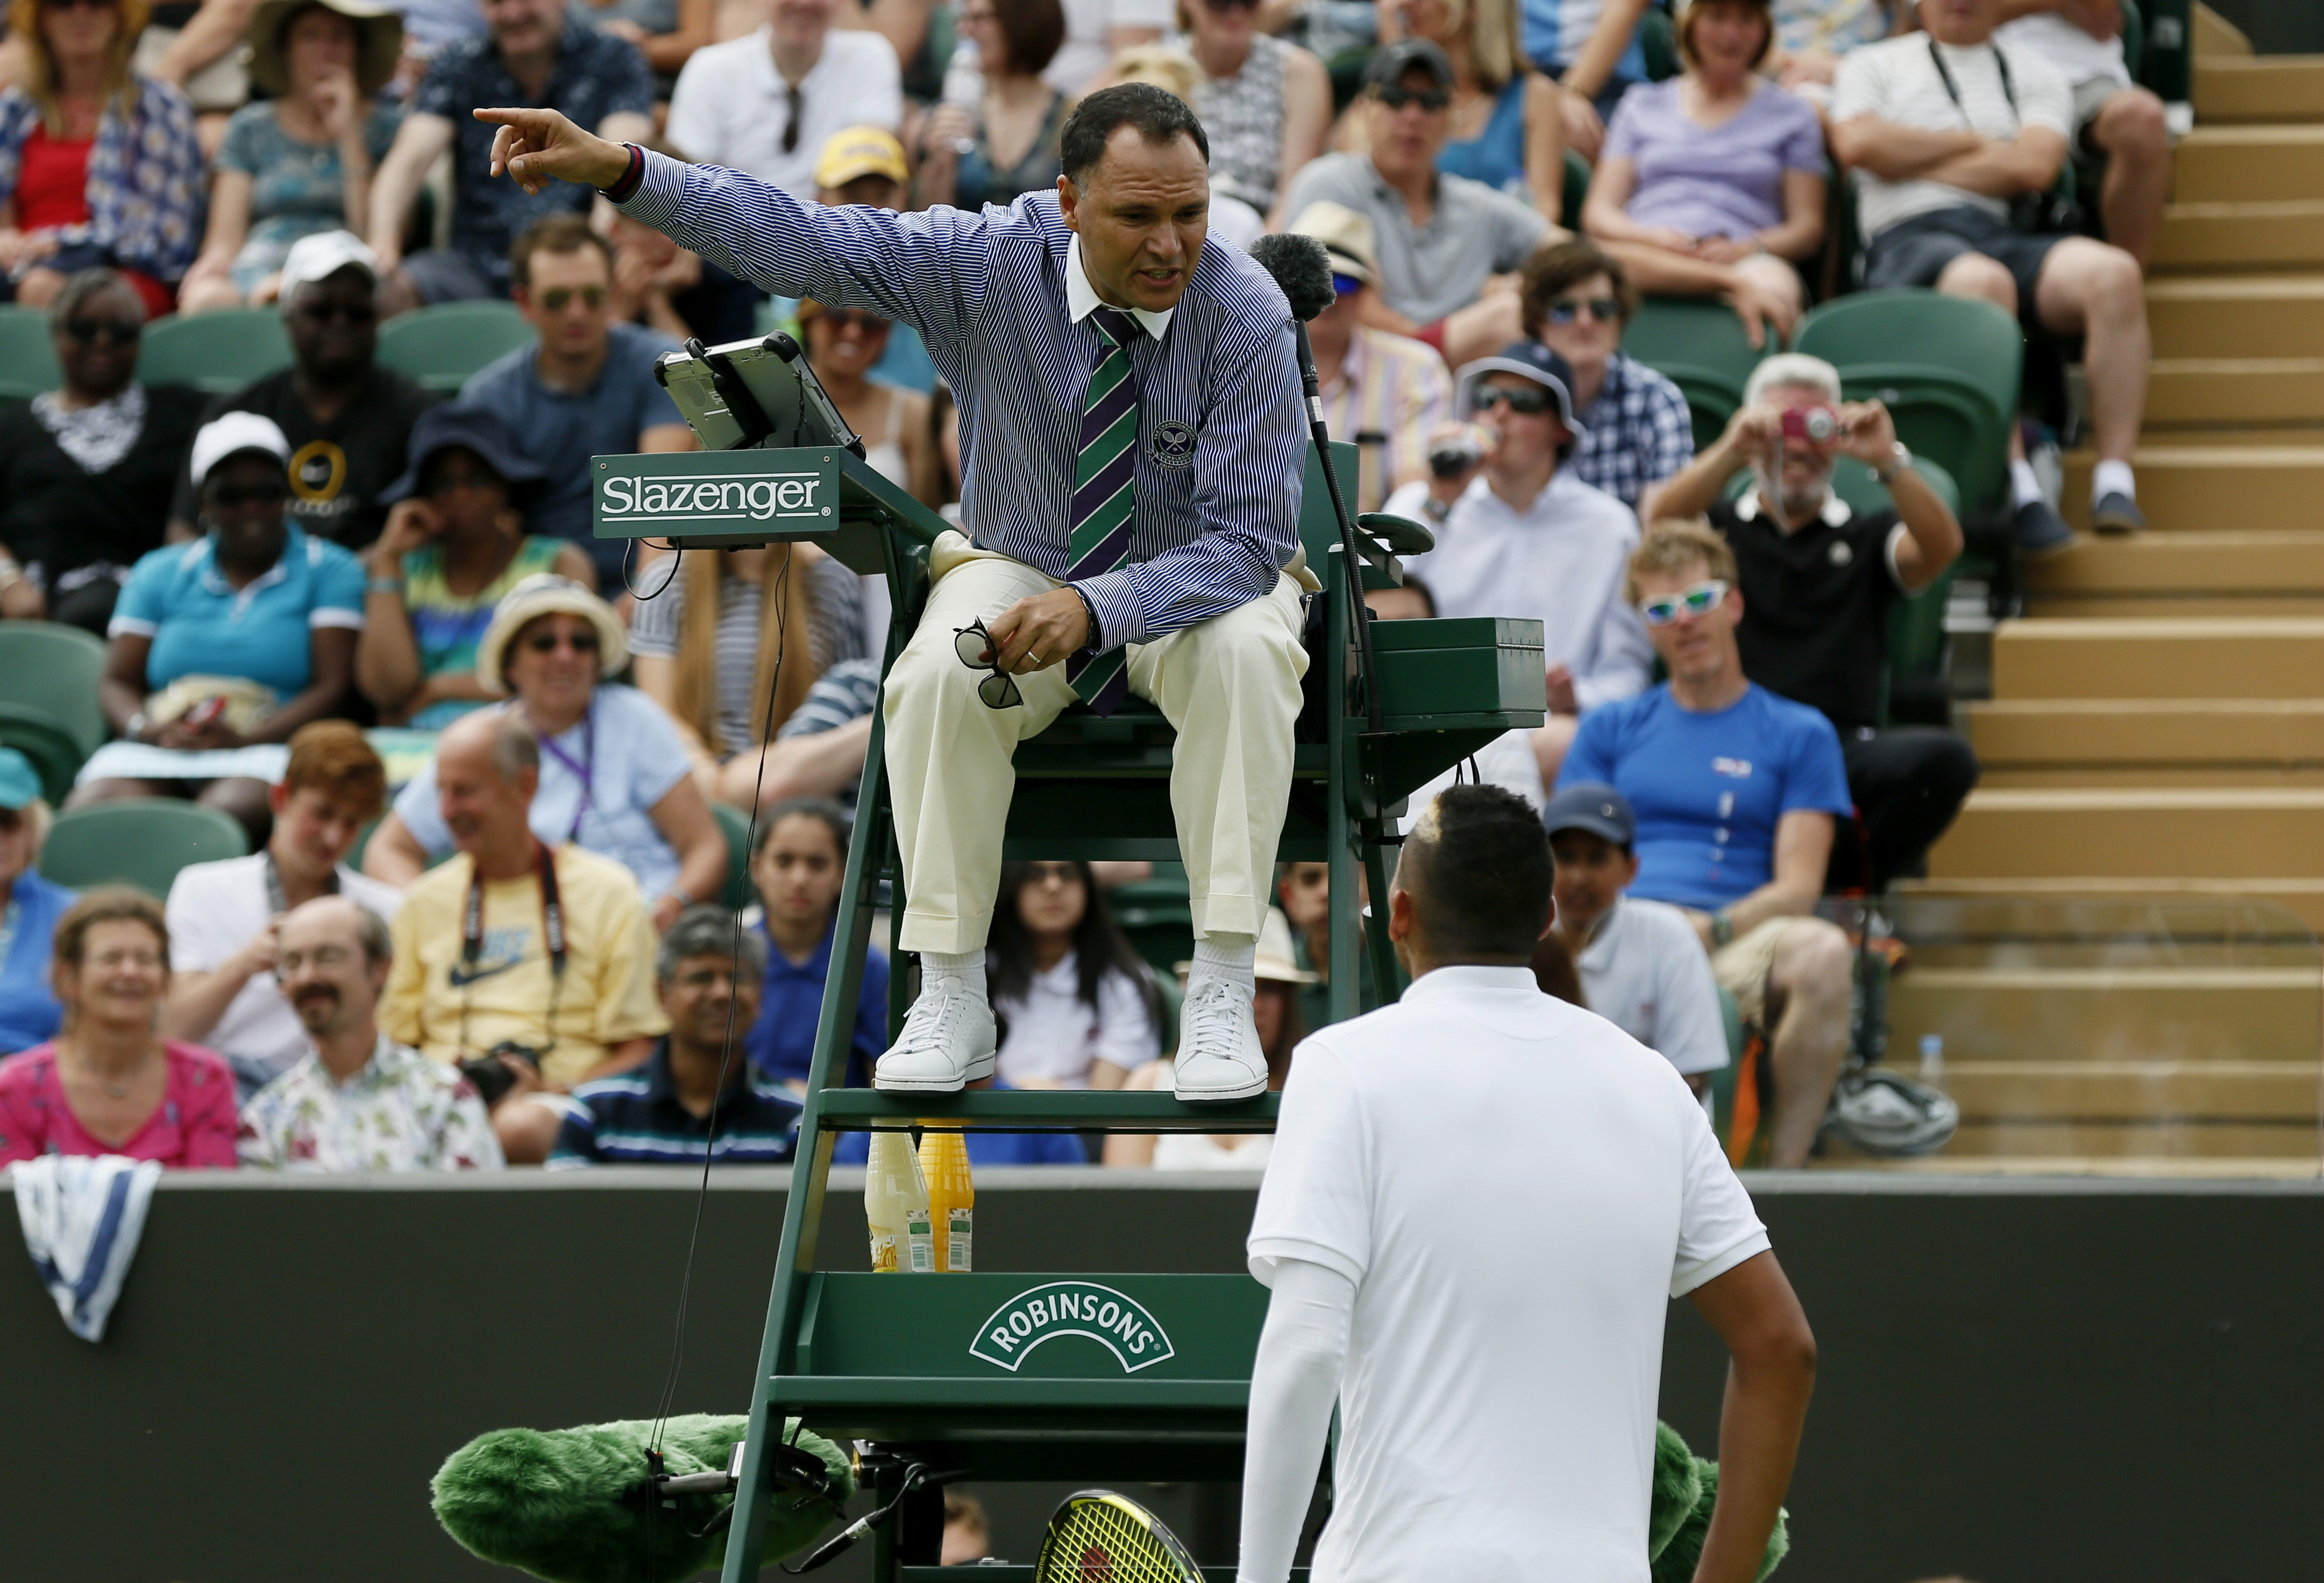 'Southfields tube station? Yeah, out the door, turn right, down the road for half a mile. You can't miss it.' - Nick Kyrgios of Australia speaks to an umpire at Wimbledon